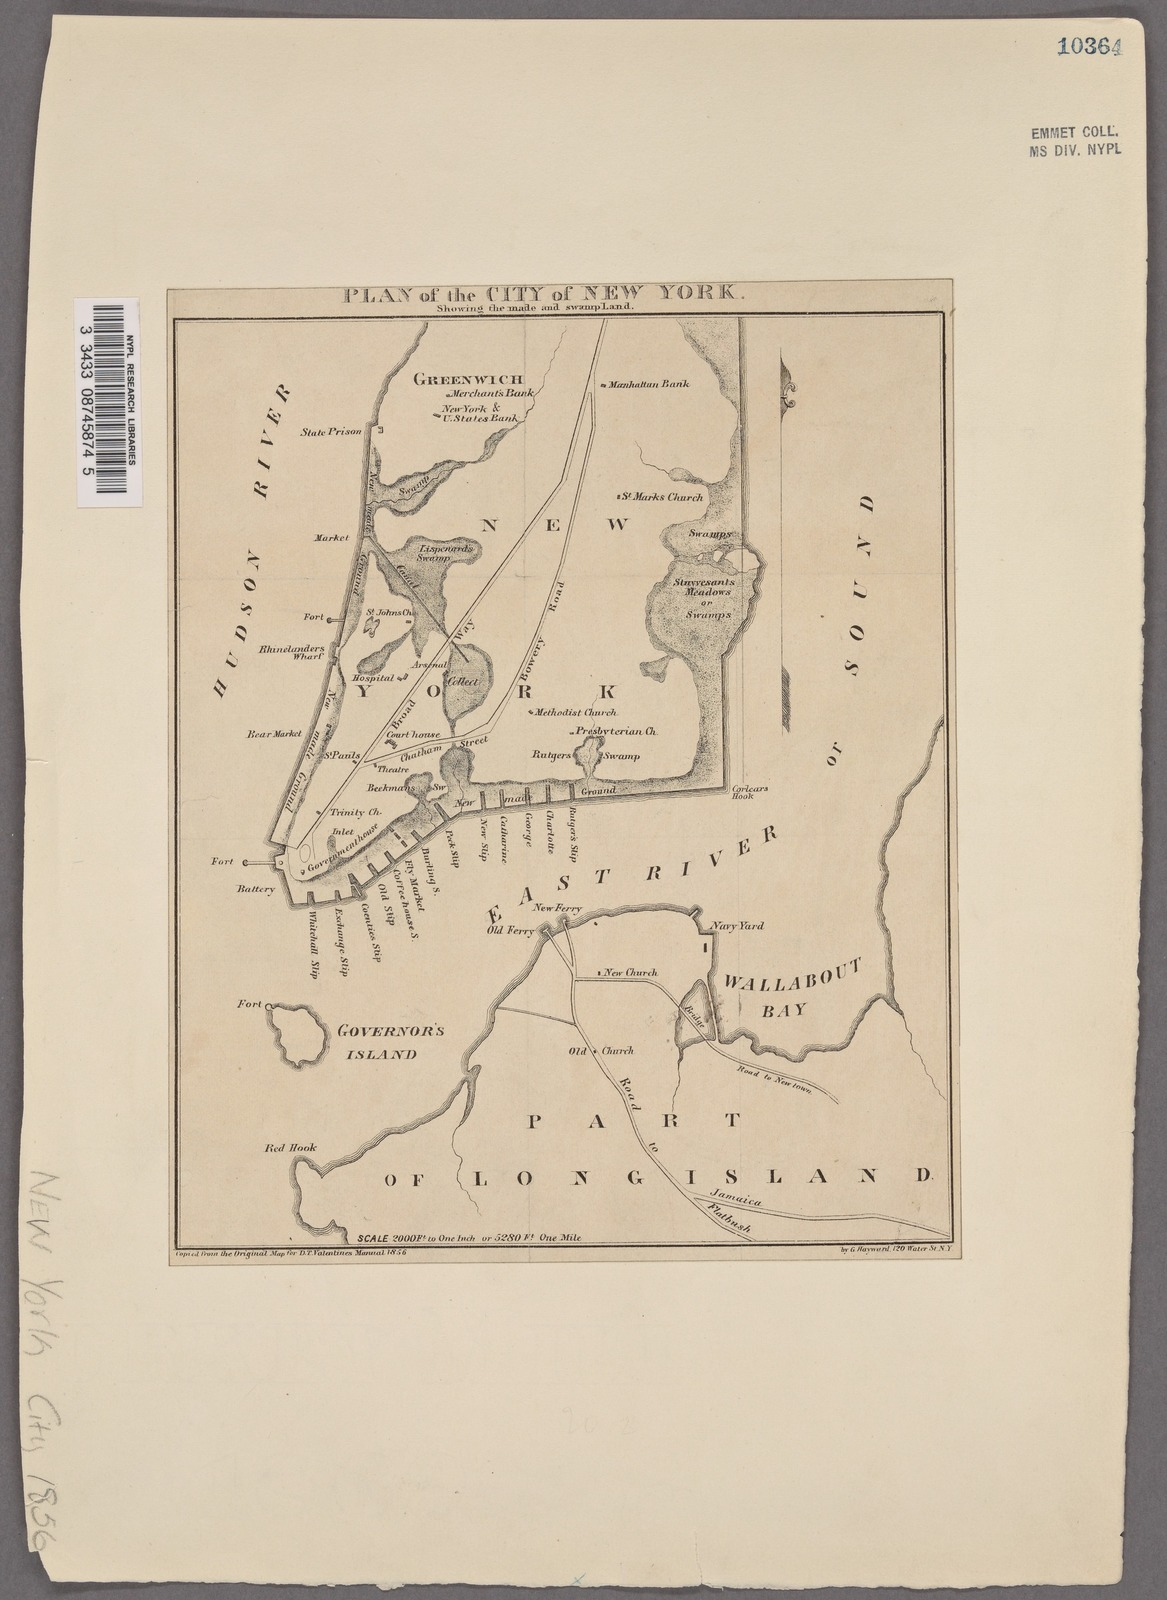 Plan of the city of New York: showing the made and swamp land / by G. Hayward, 120 Water St. N.Y.